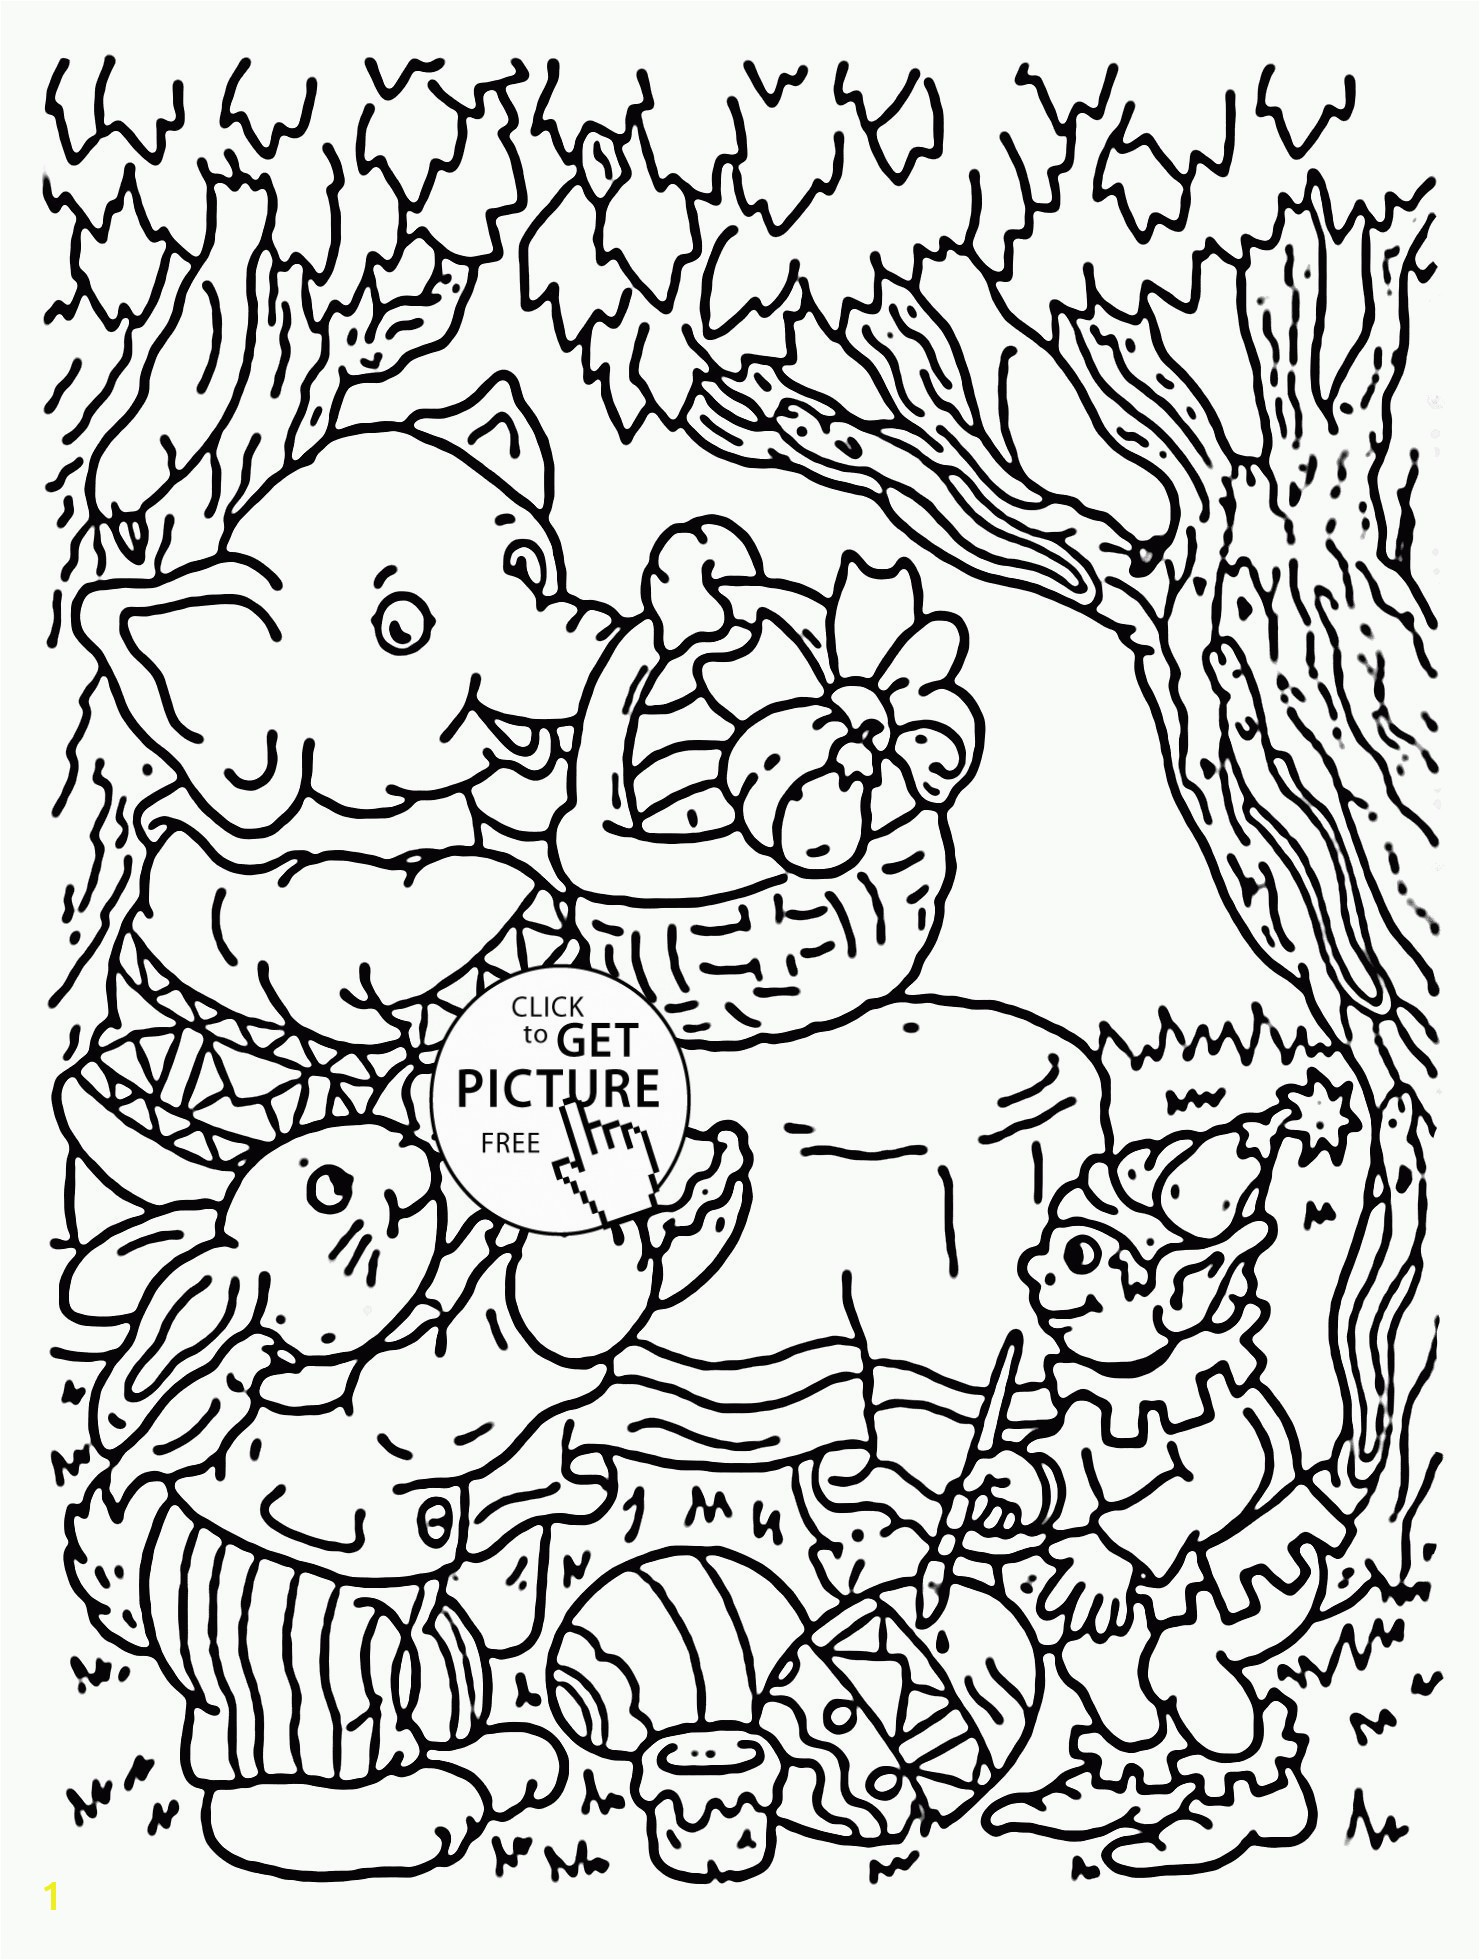 Print Coloring Pages Luxury S S Media Cache Ak0 Pinimg originals 0d